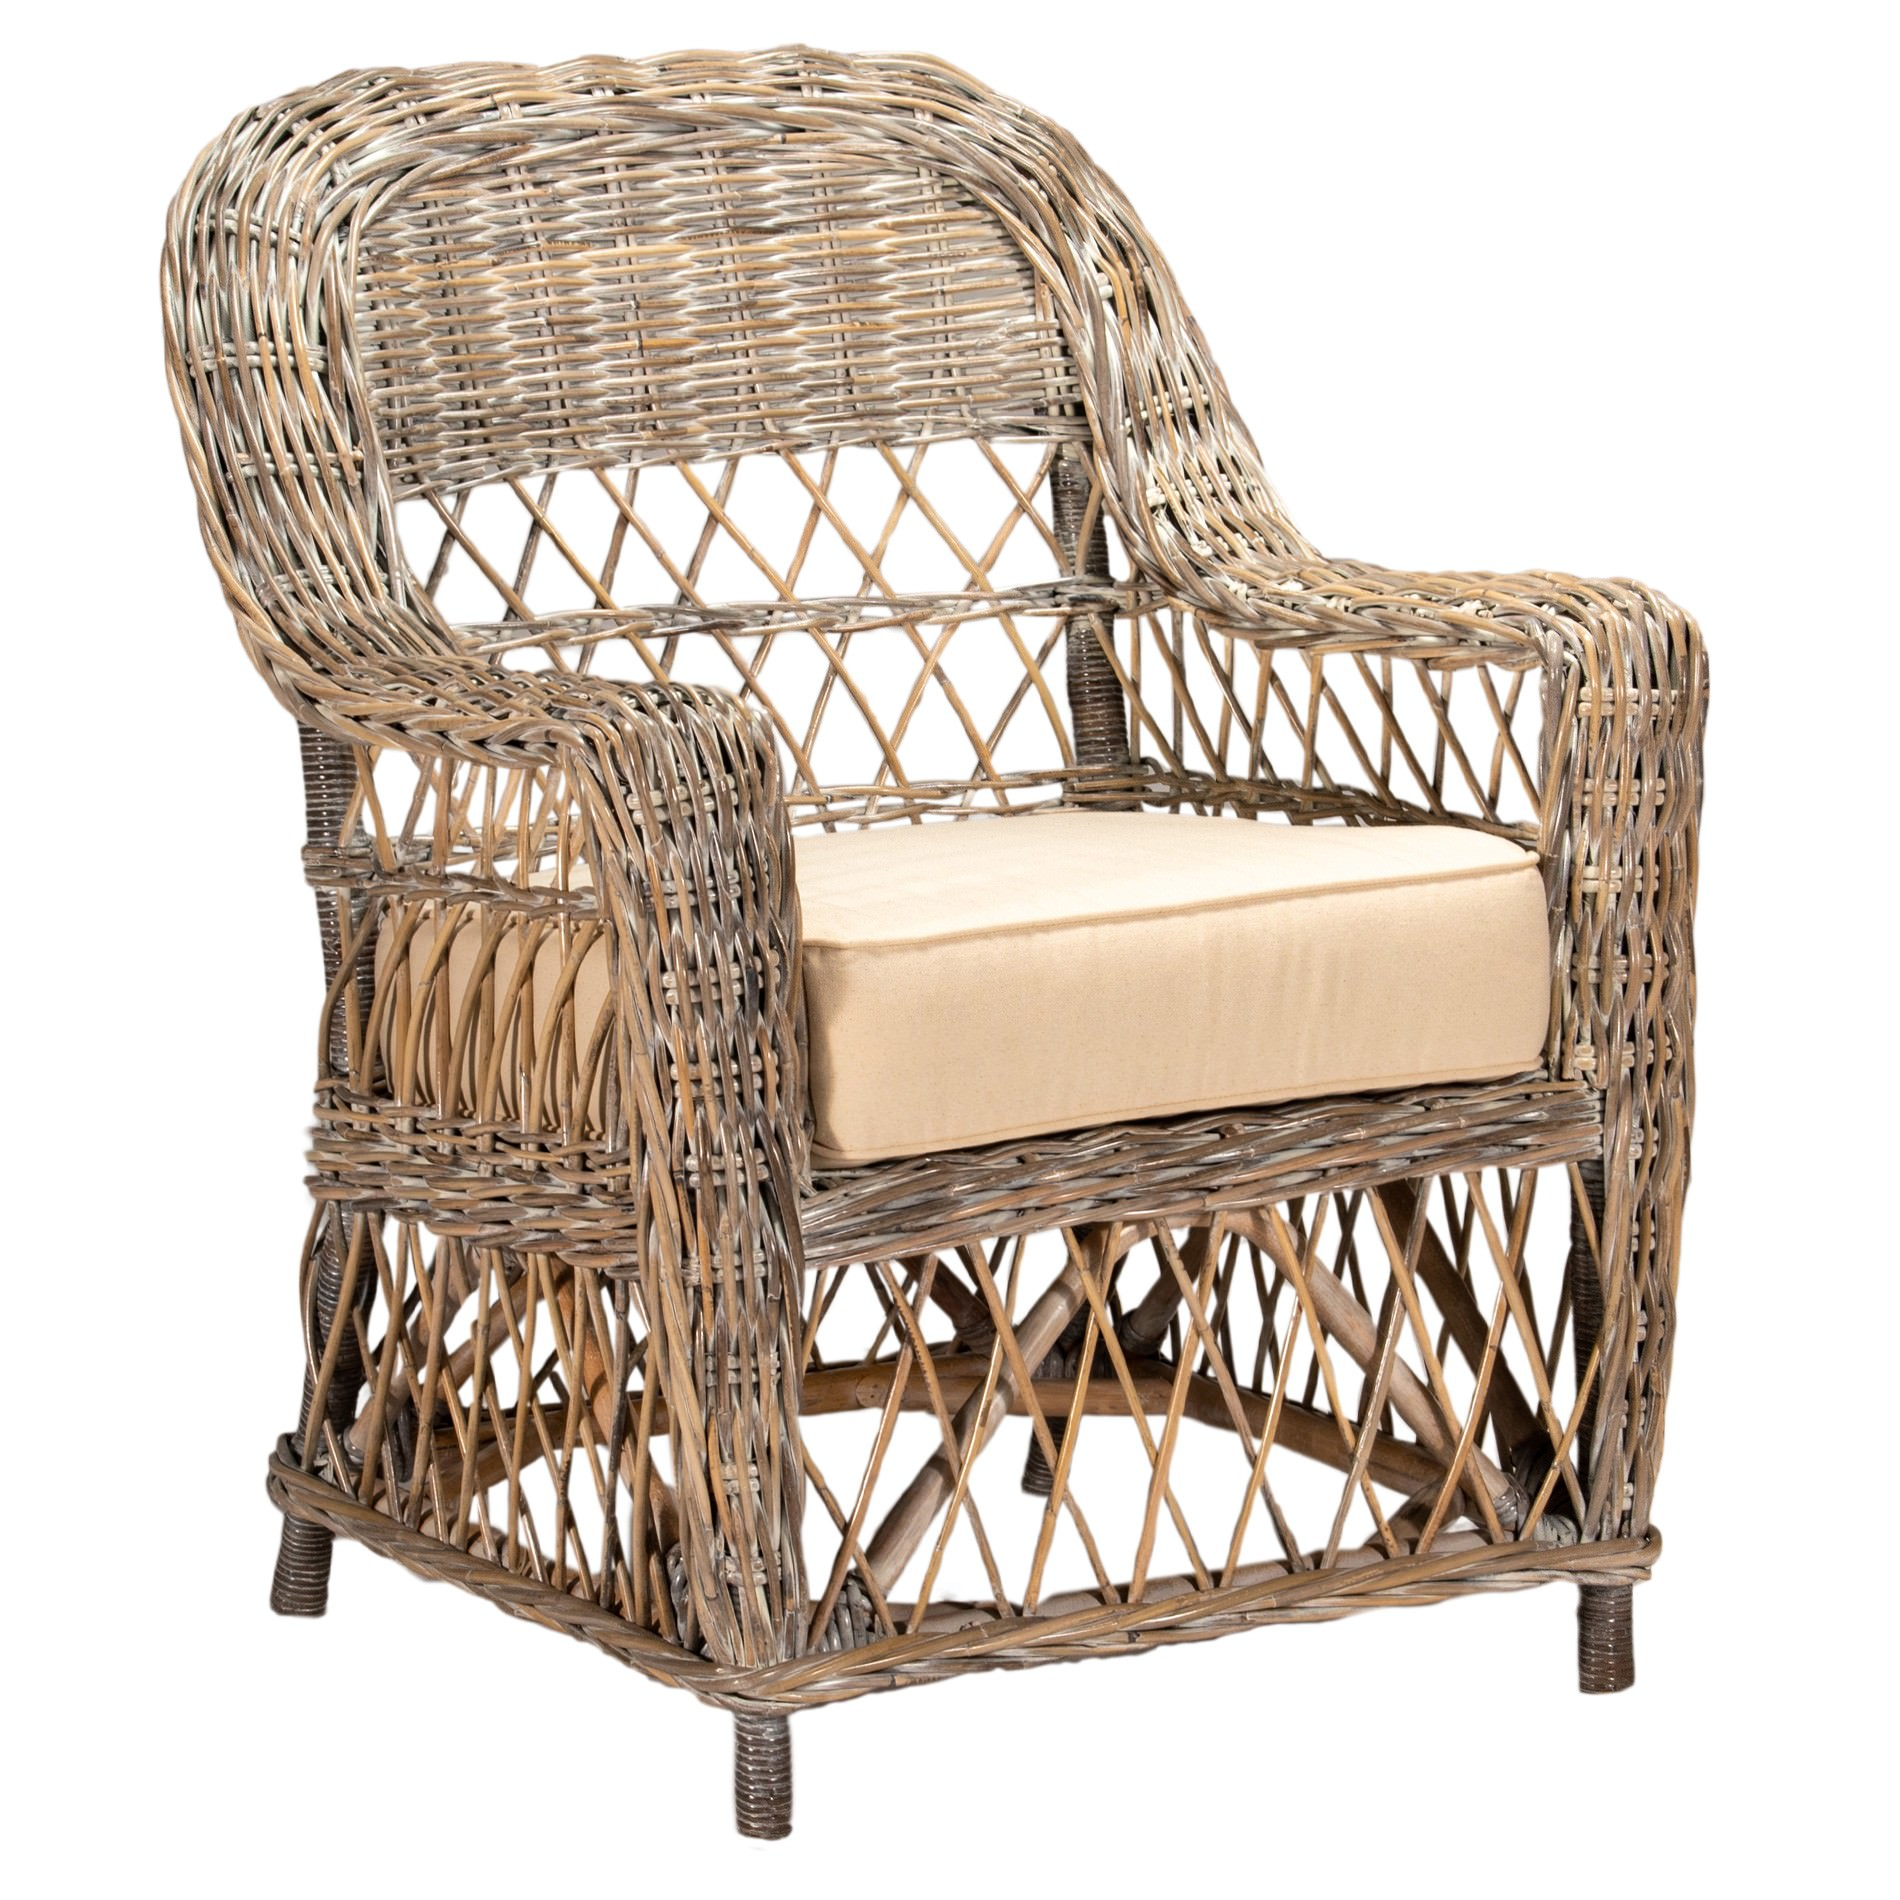 Palmetto Rattan Armchair, White Washed Natural